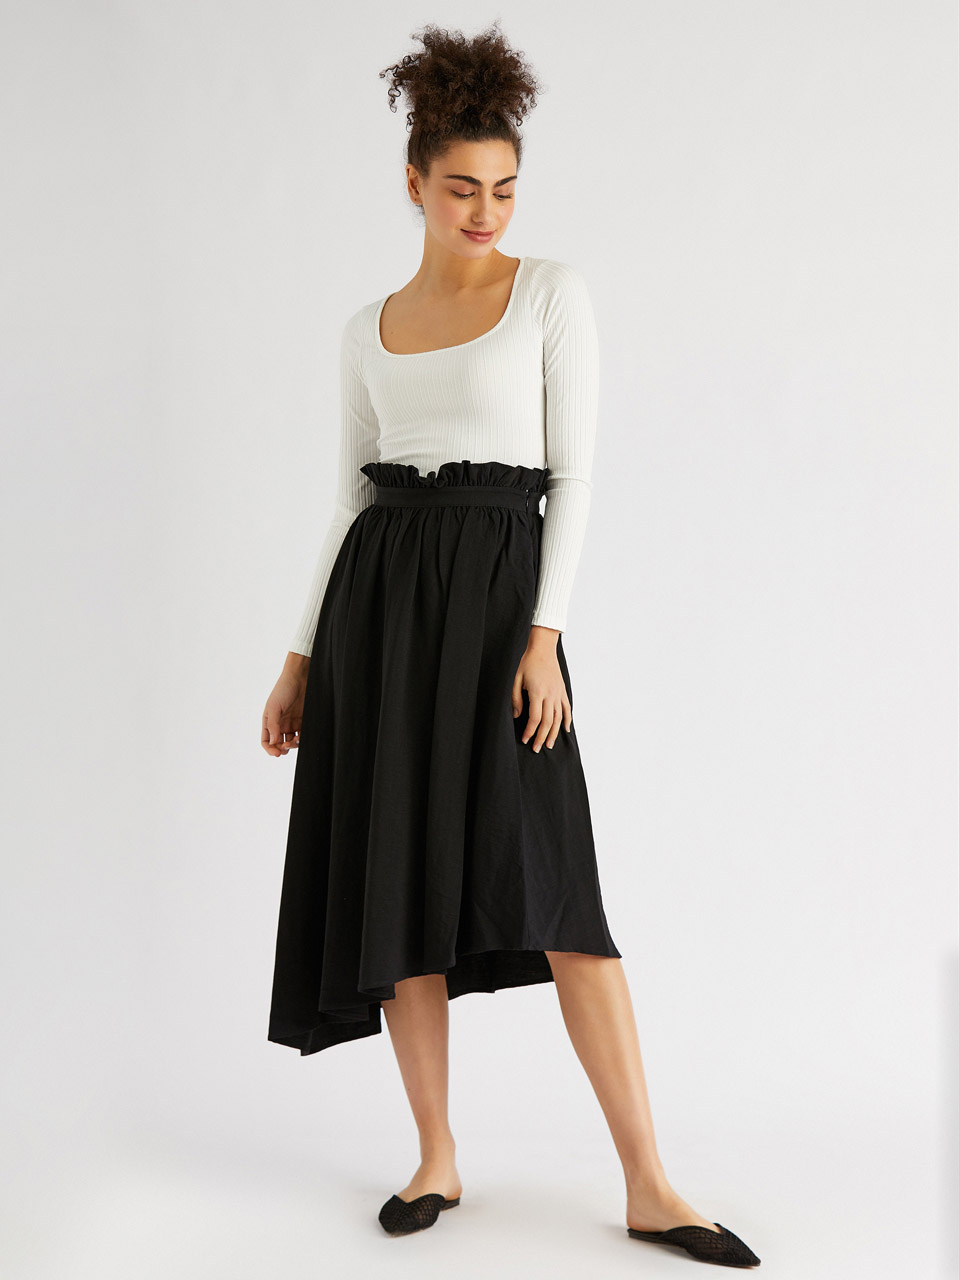 Ruffled Skirt at Waist